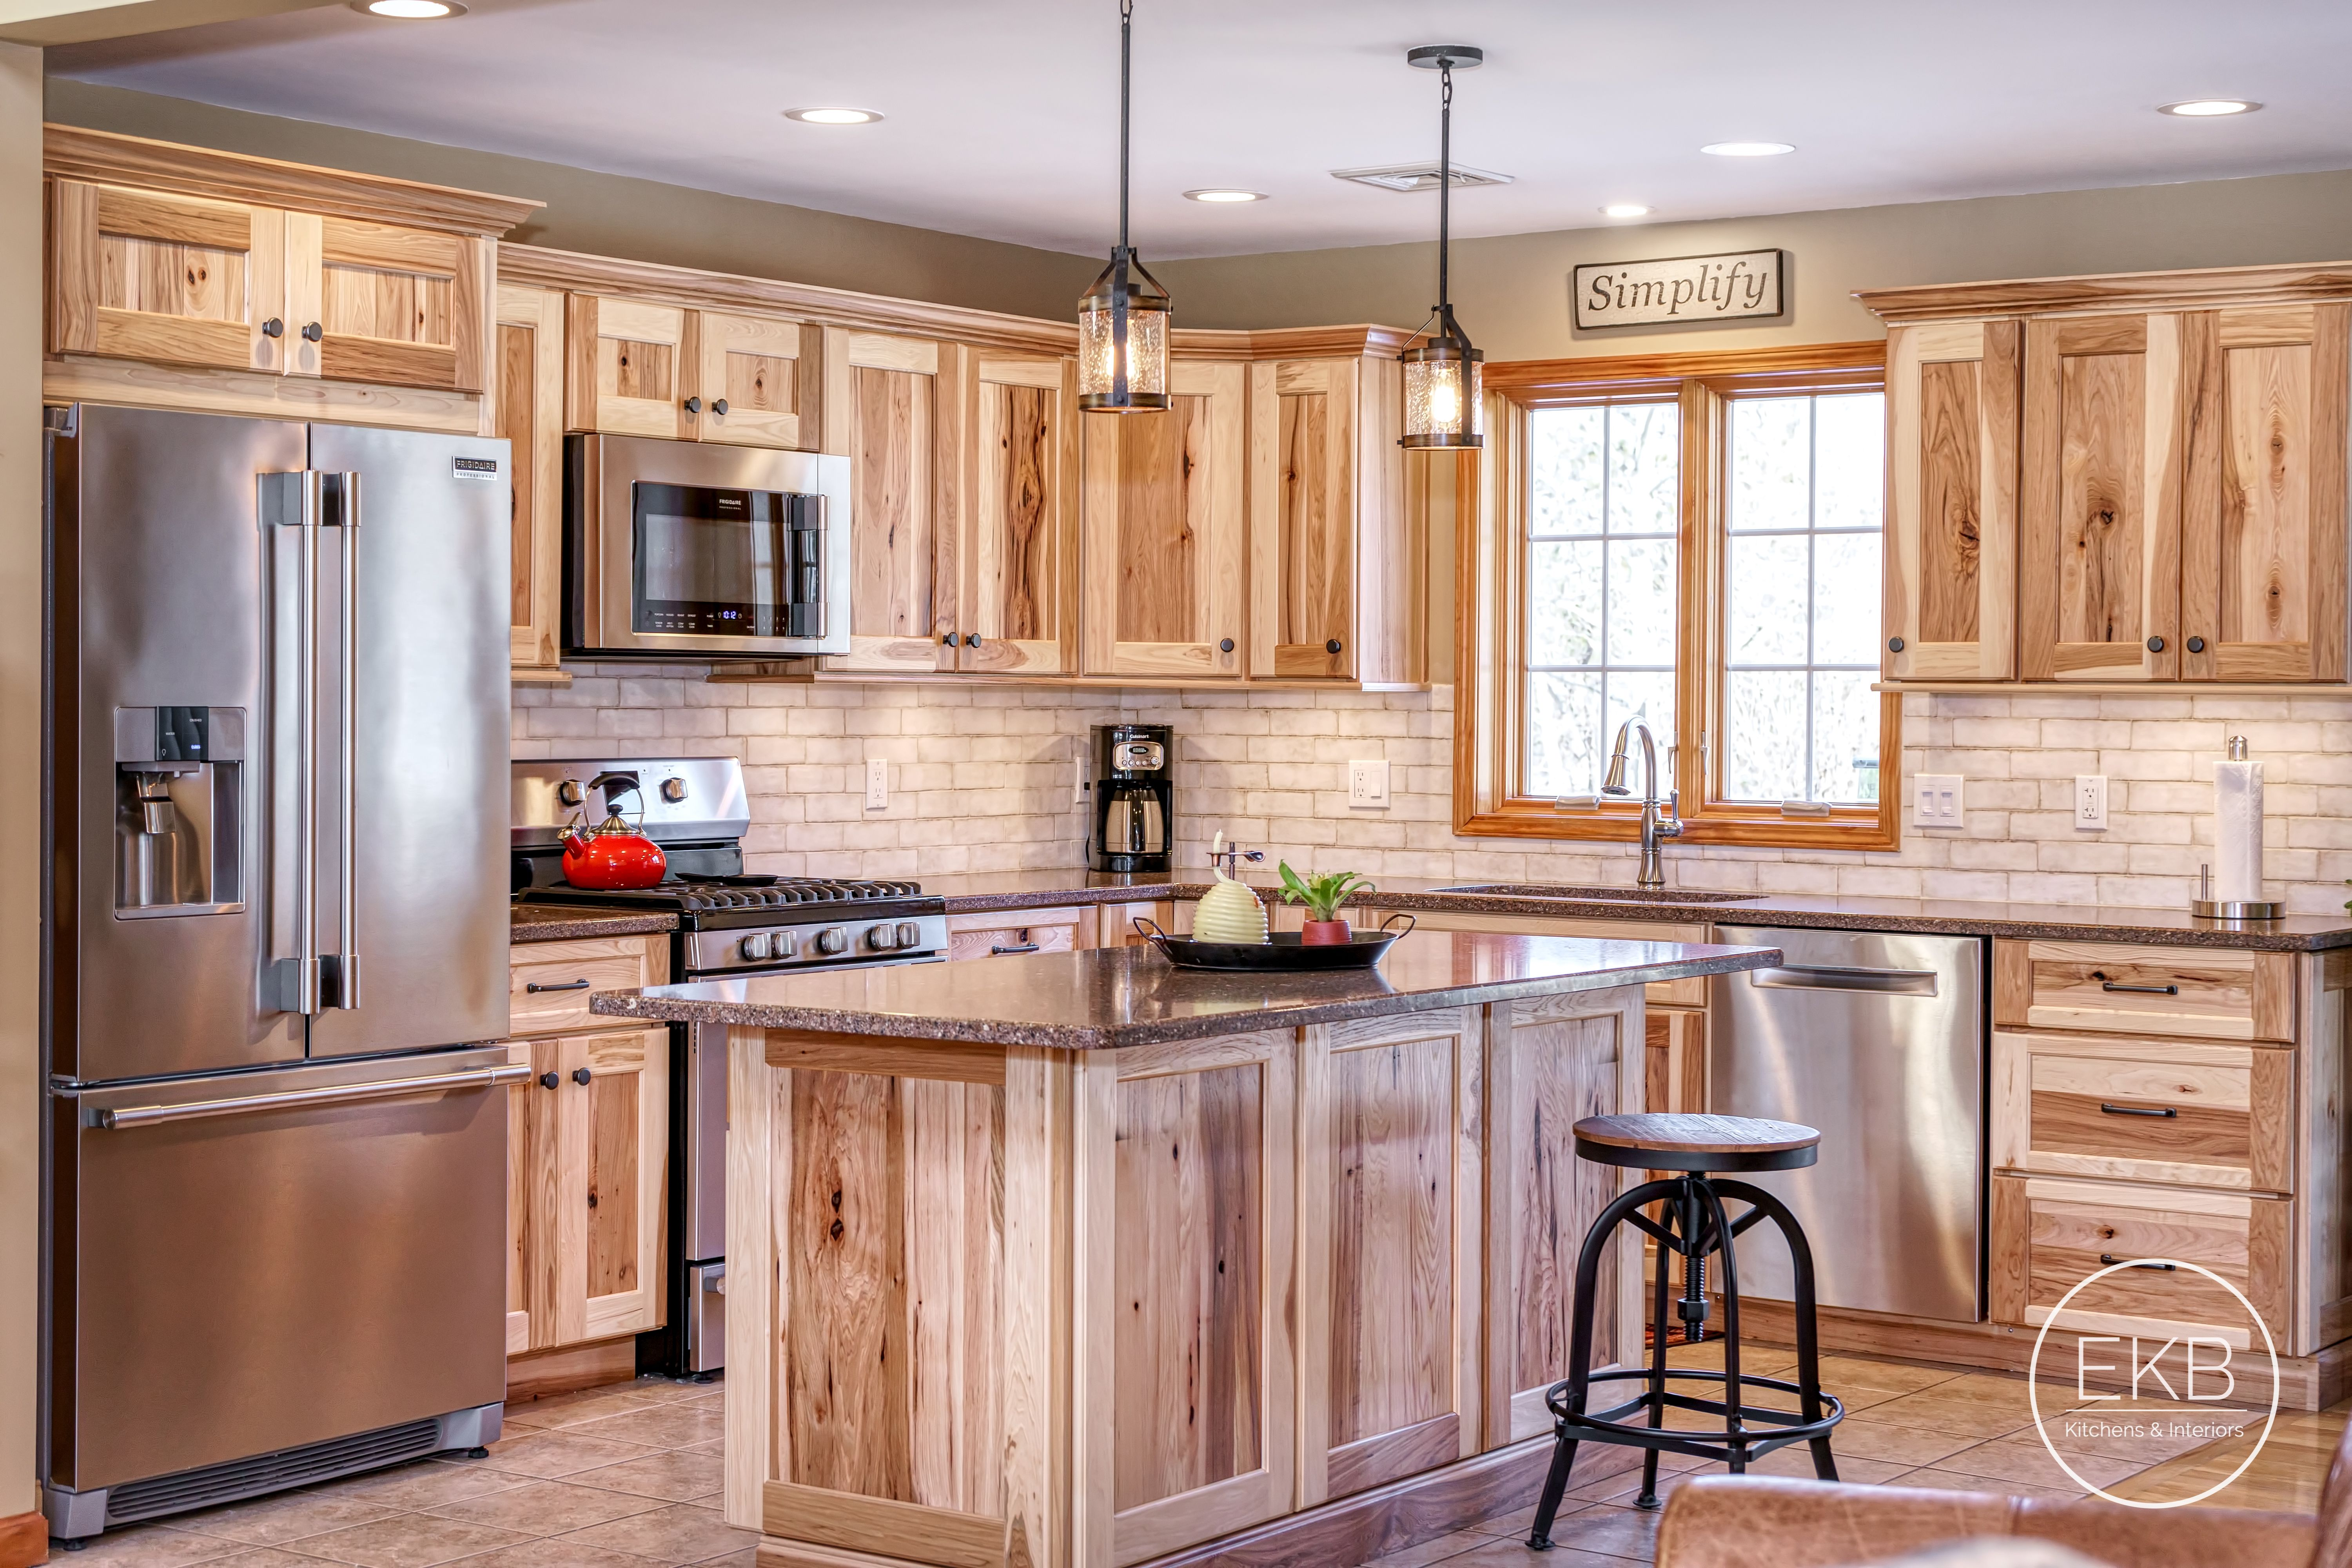 """Shiloh Hickory cabinets with Silestone """"Sierra Madre ..."""